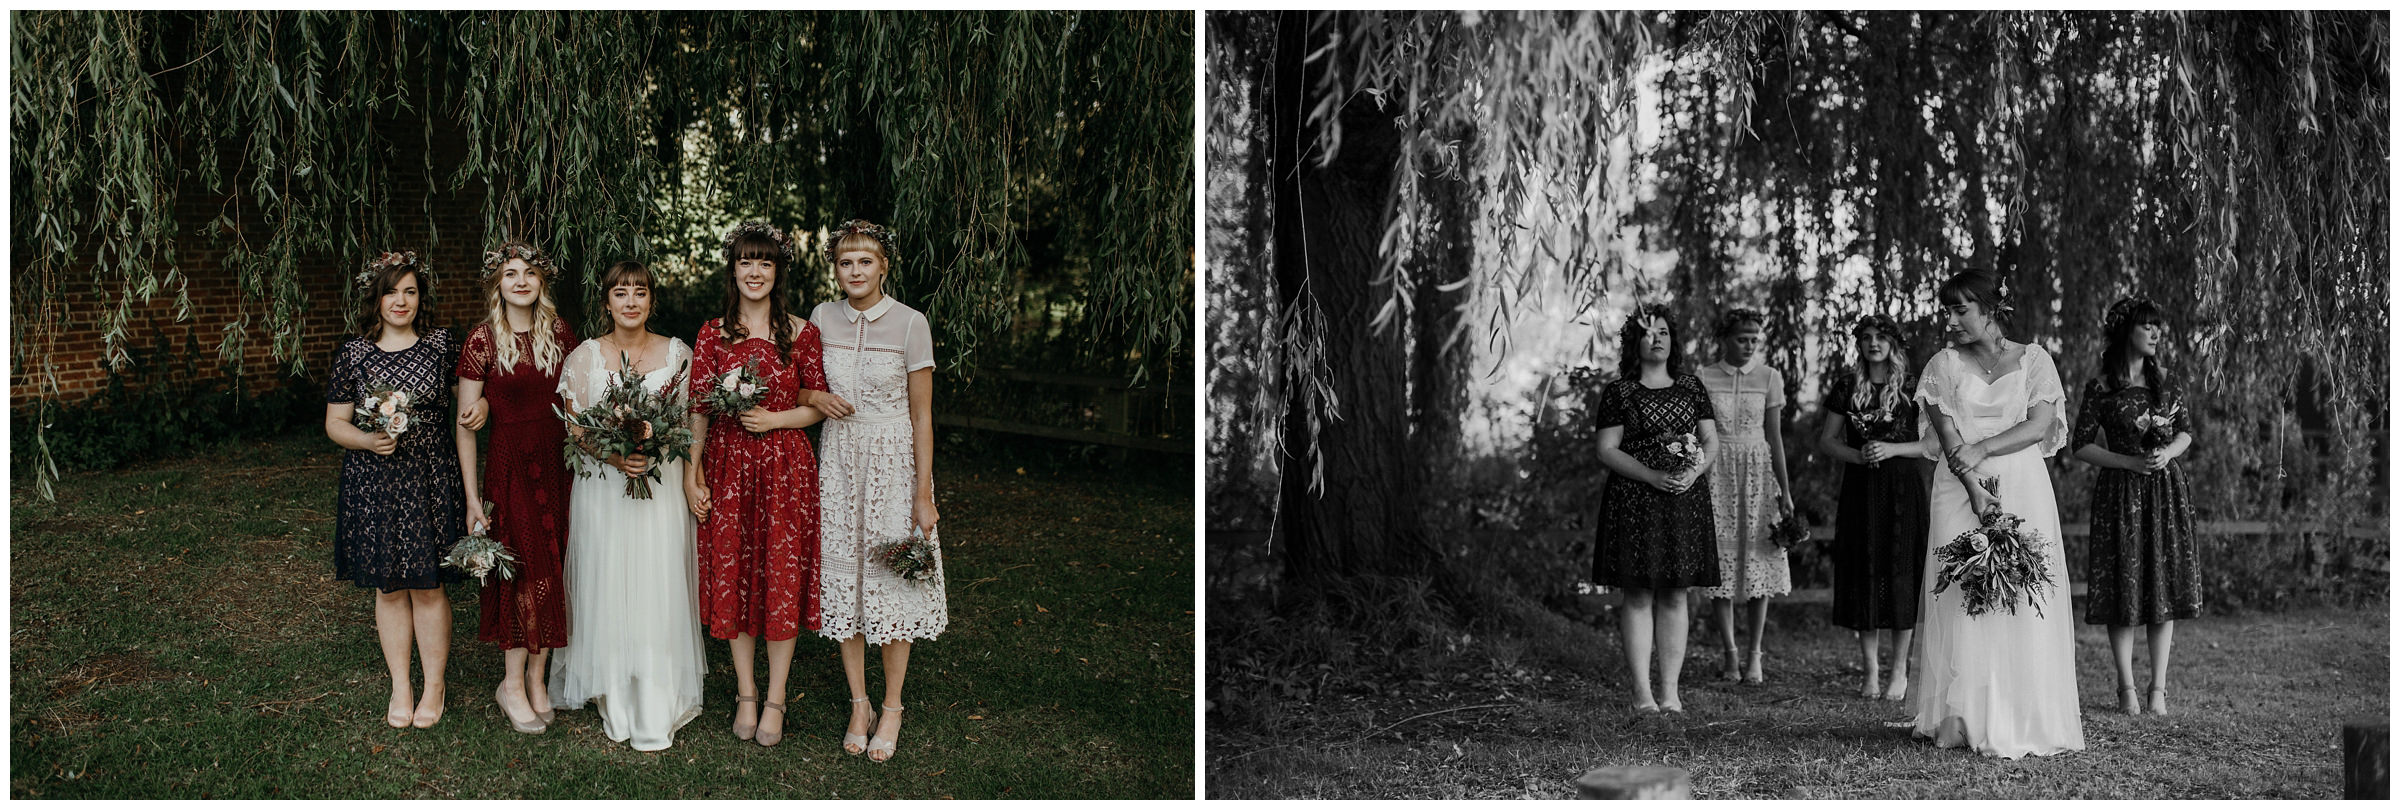 eclectic bridesmaid style at poppleton tithe barn in york england